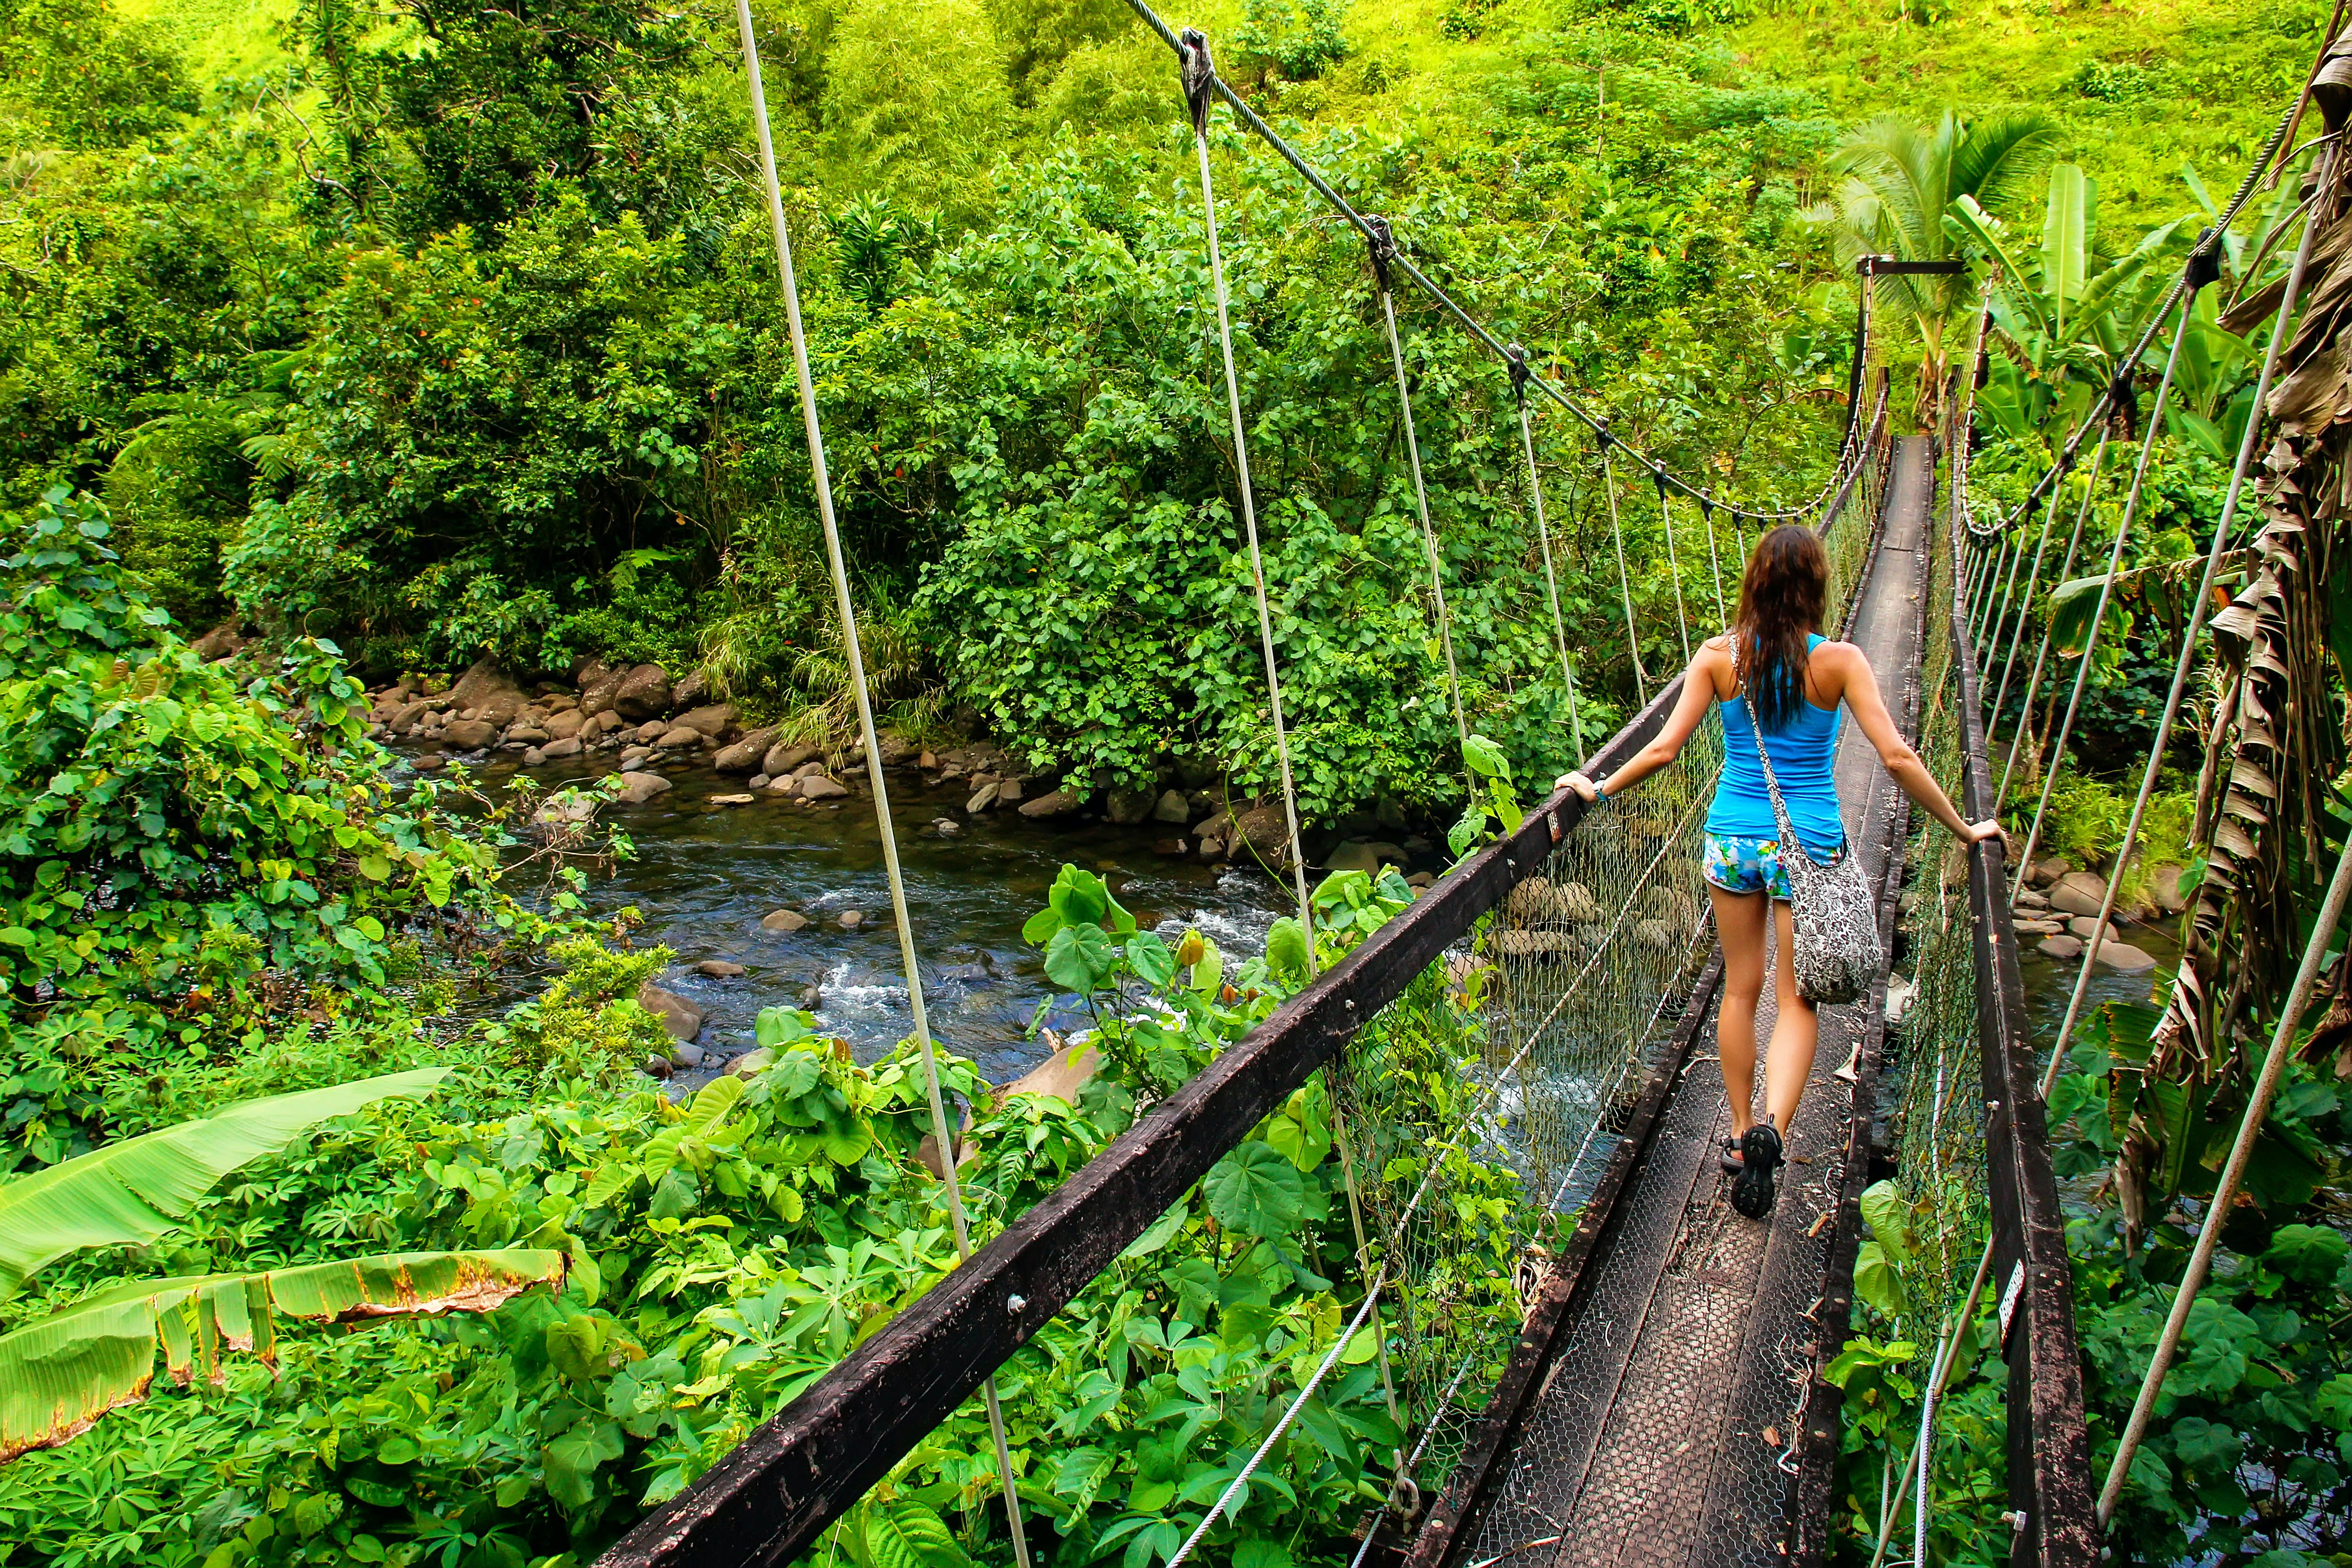 A woman is walking away from the camera, across a rickety bridge in a rainforest. A river runs over a rocky riverbed below.